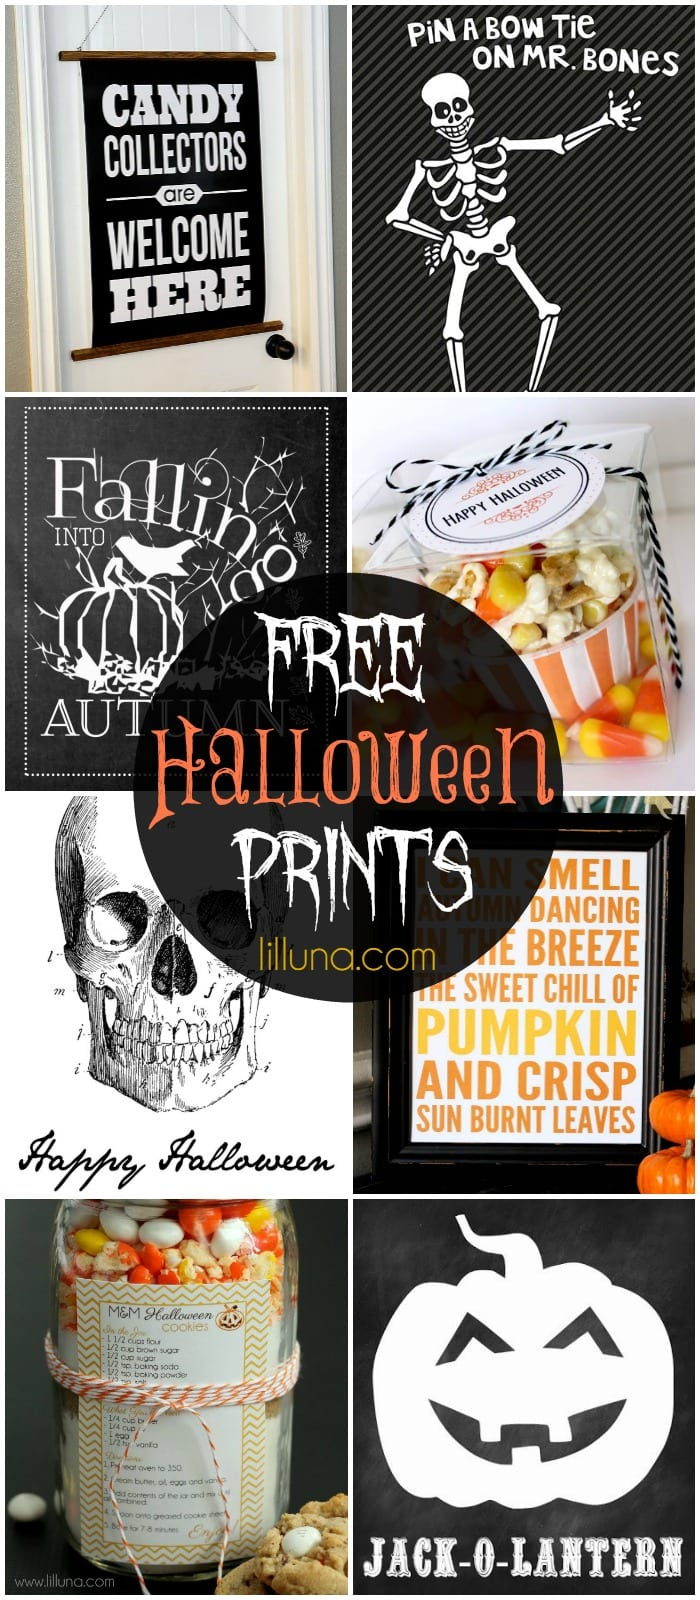 65+ FREE Halloween Printables!! A must see roundup on { lilluna.com } Lots of great ideas!!!